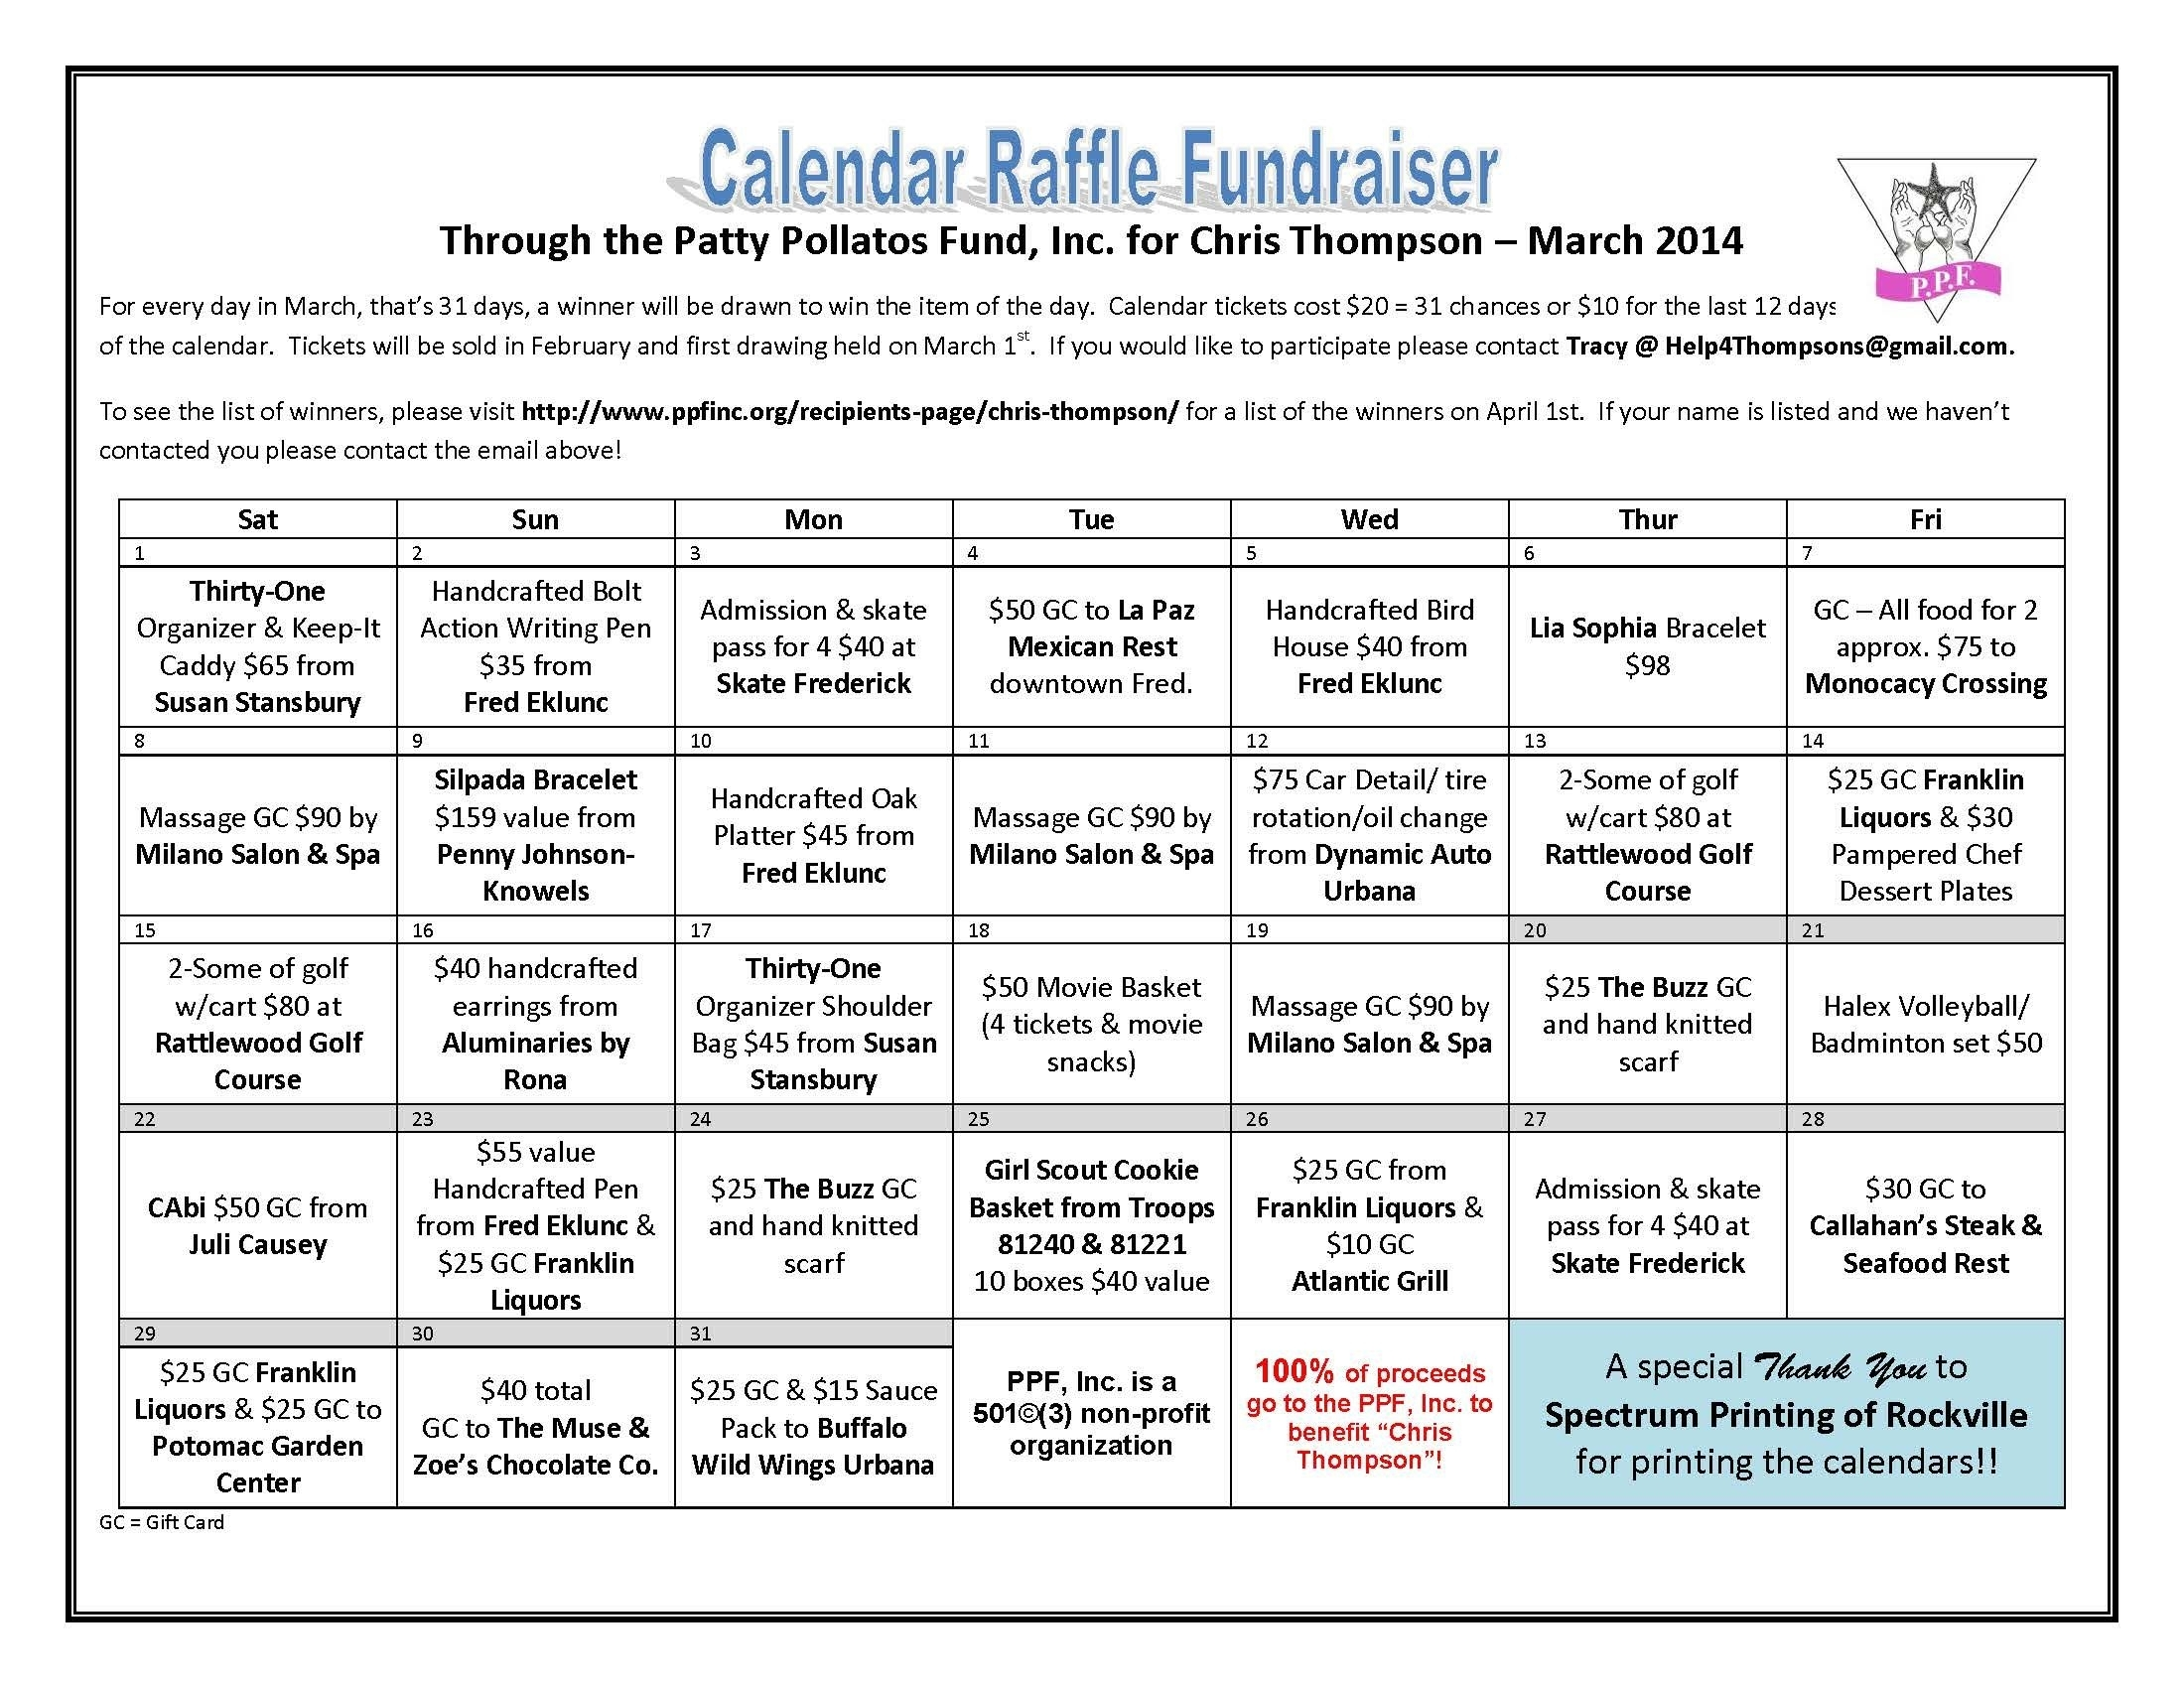 Chris Thompson Calendar Raffle (With Images) | Fundraising